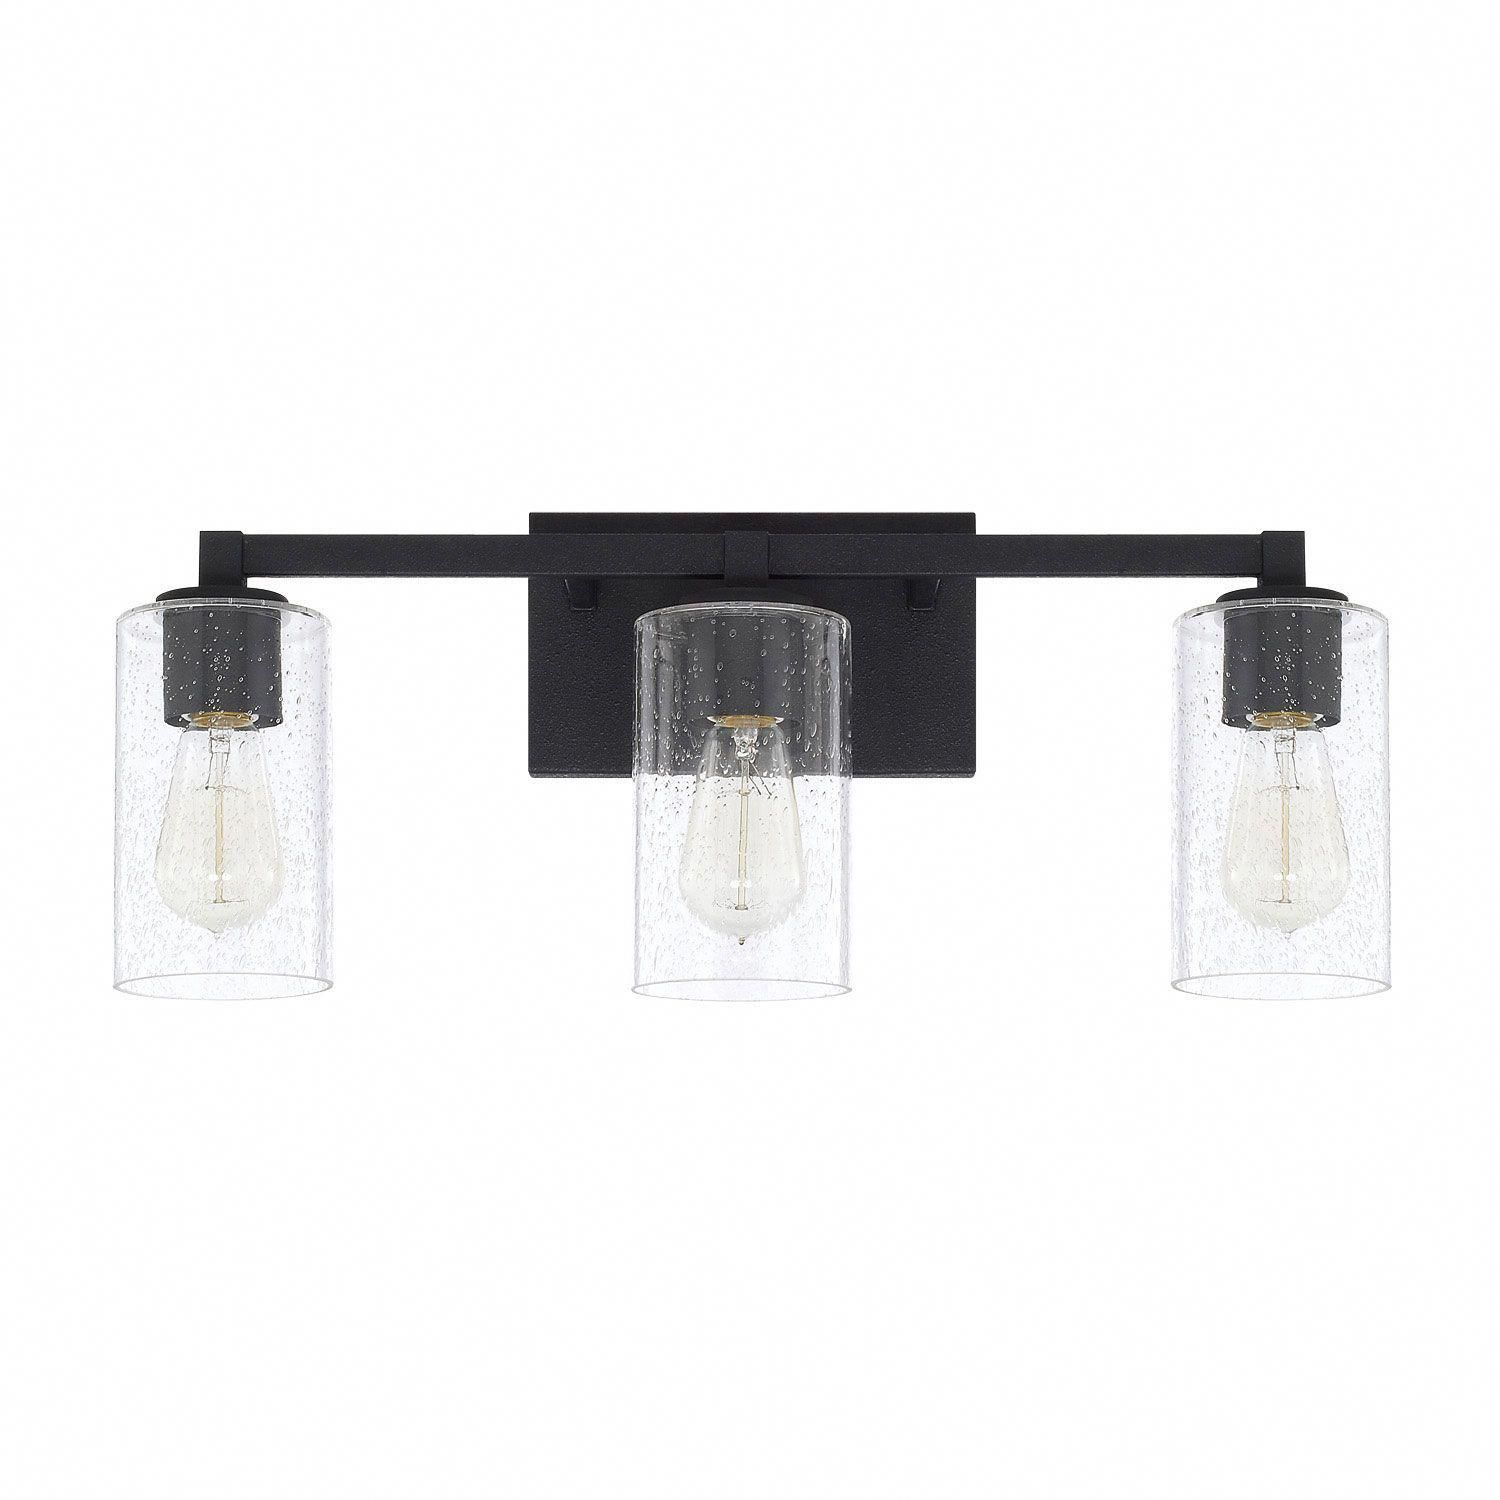 Photo of Capital Lighting Fixture Company Ravenwood Black iron three-light bathroom vanity 119831bi 435 | Bellacor